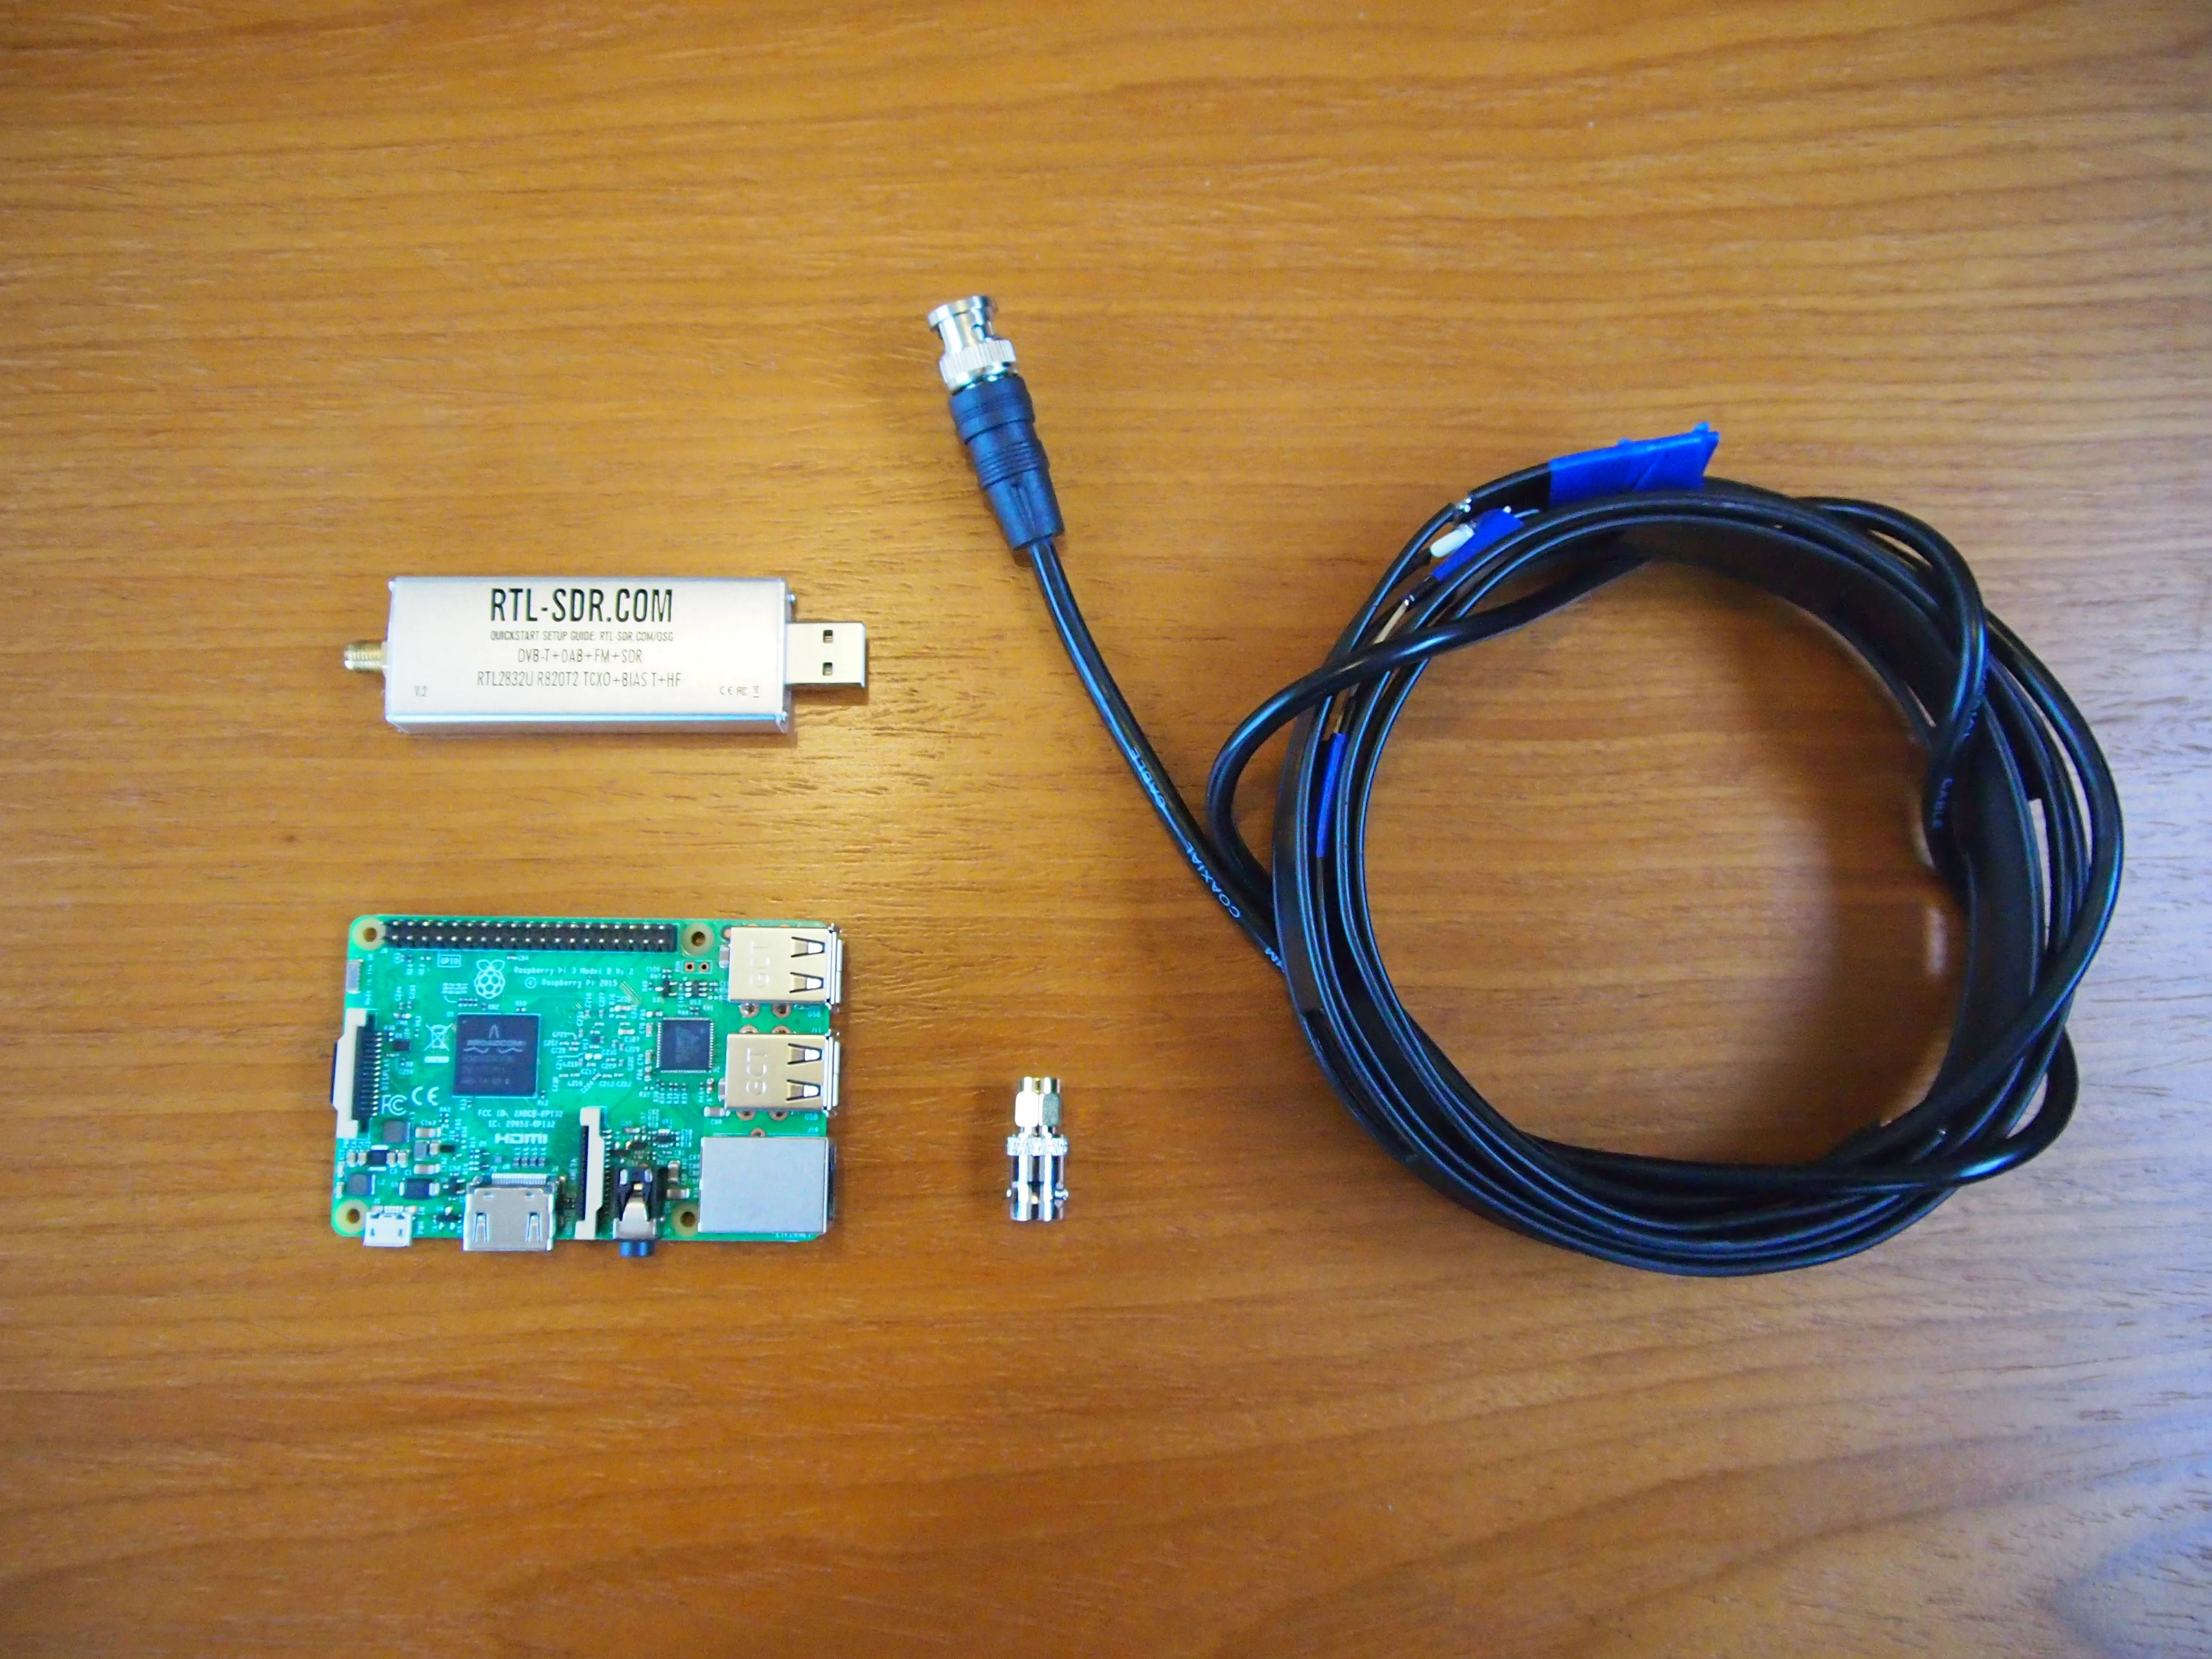 Build a SatNOGS ground station with a Raspberry Pi 3B+